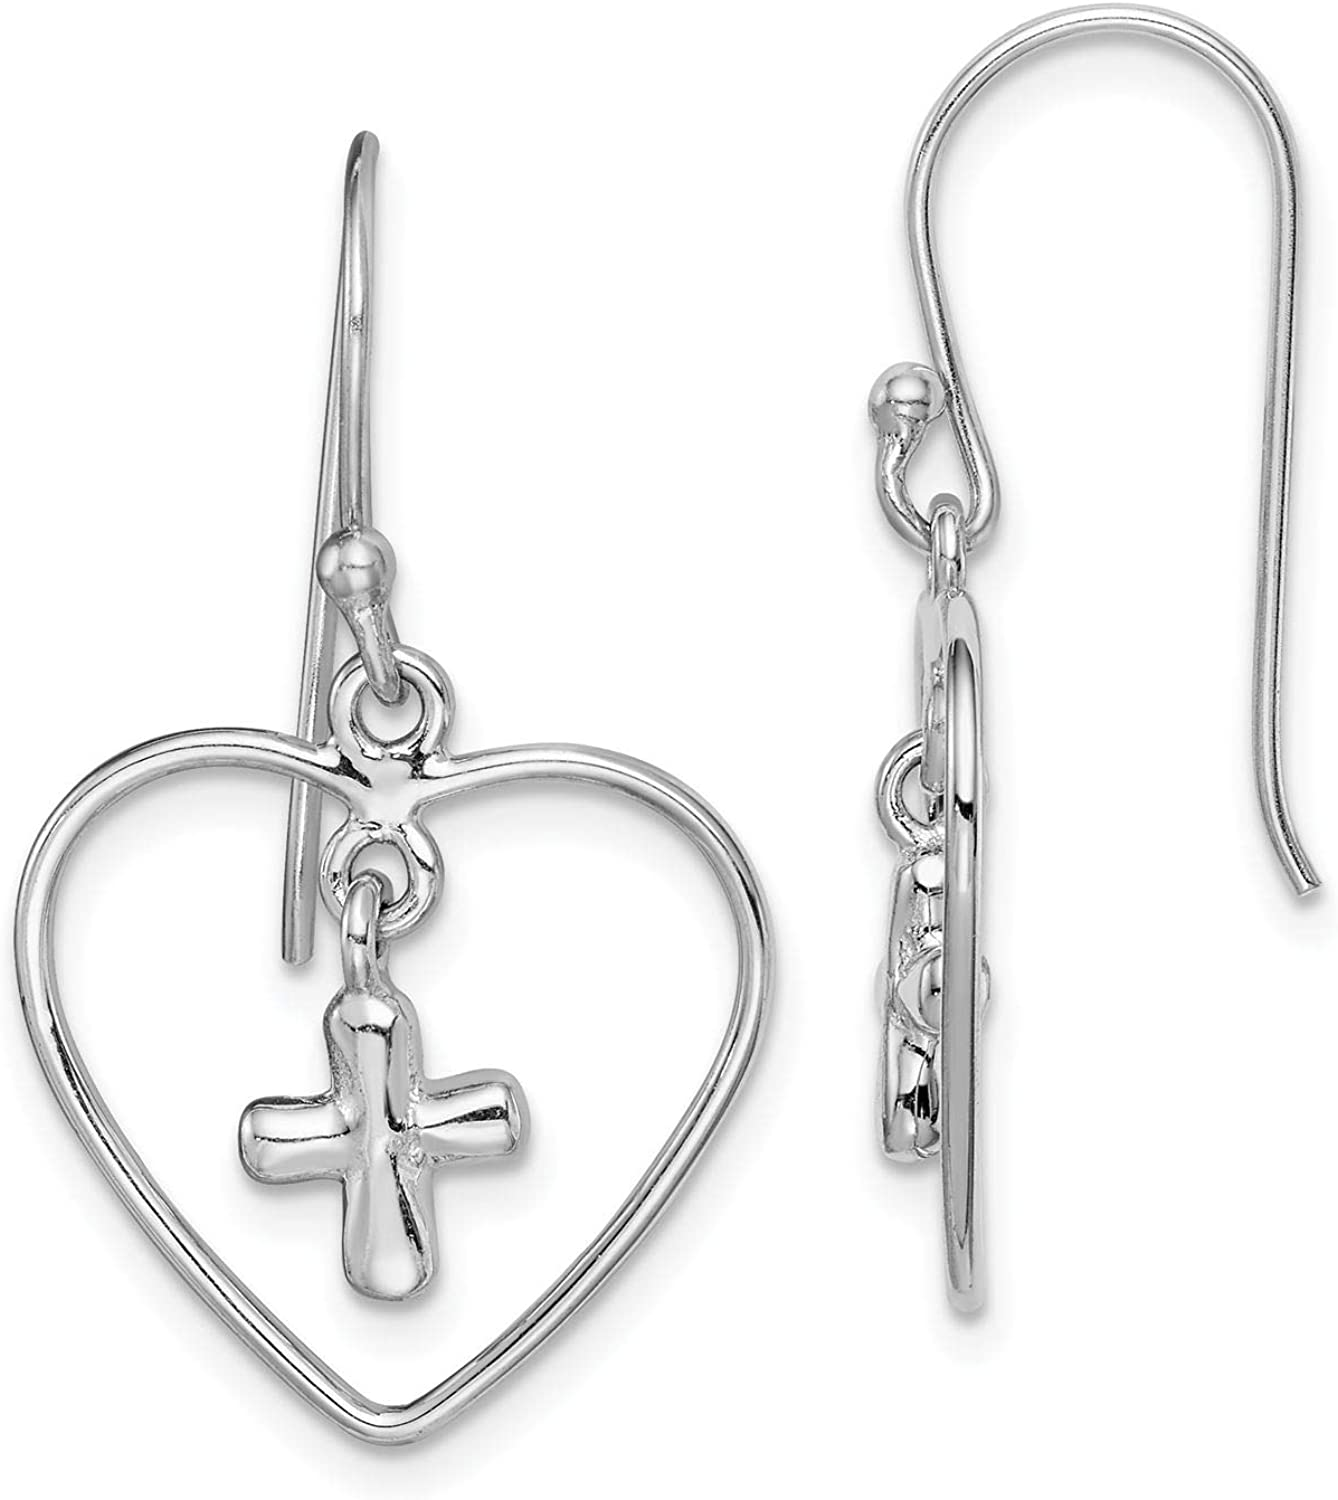 925 Sterling Silver Rhodium-plated Polished CZ Heart Dangle Post Earrings